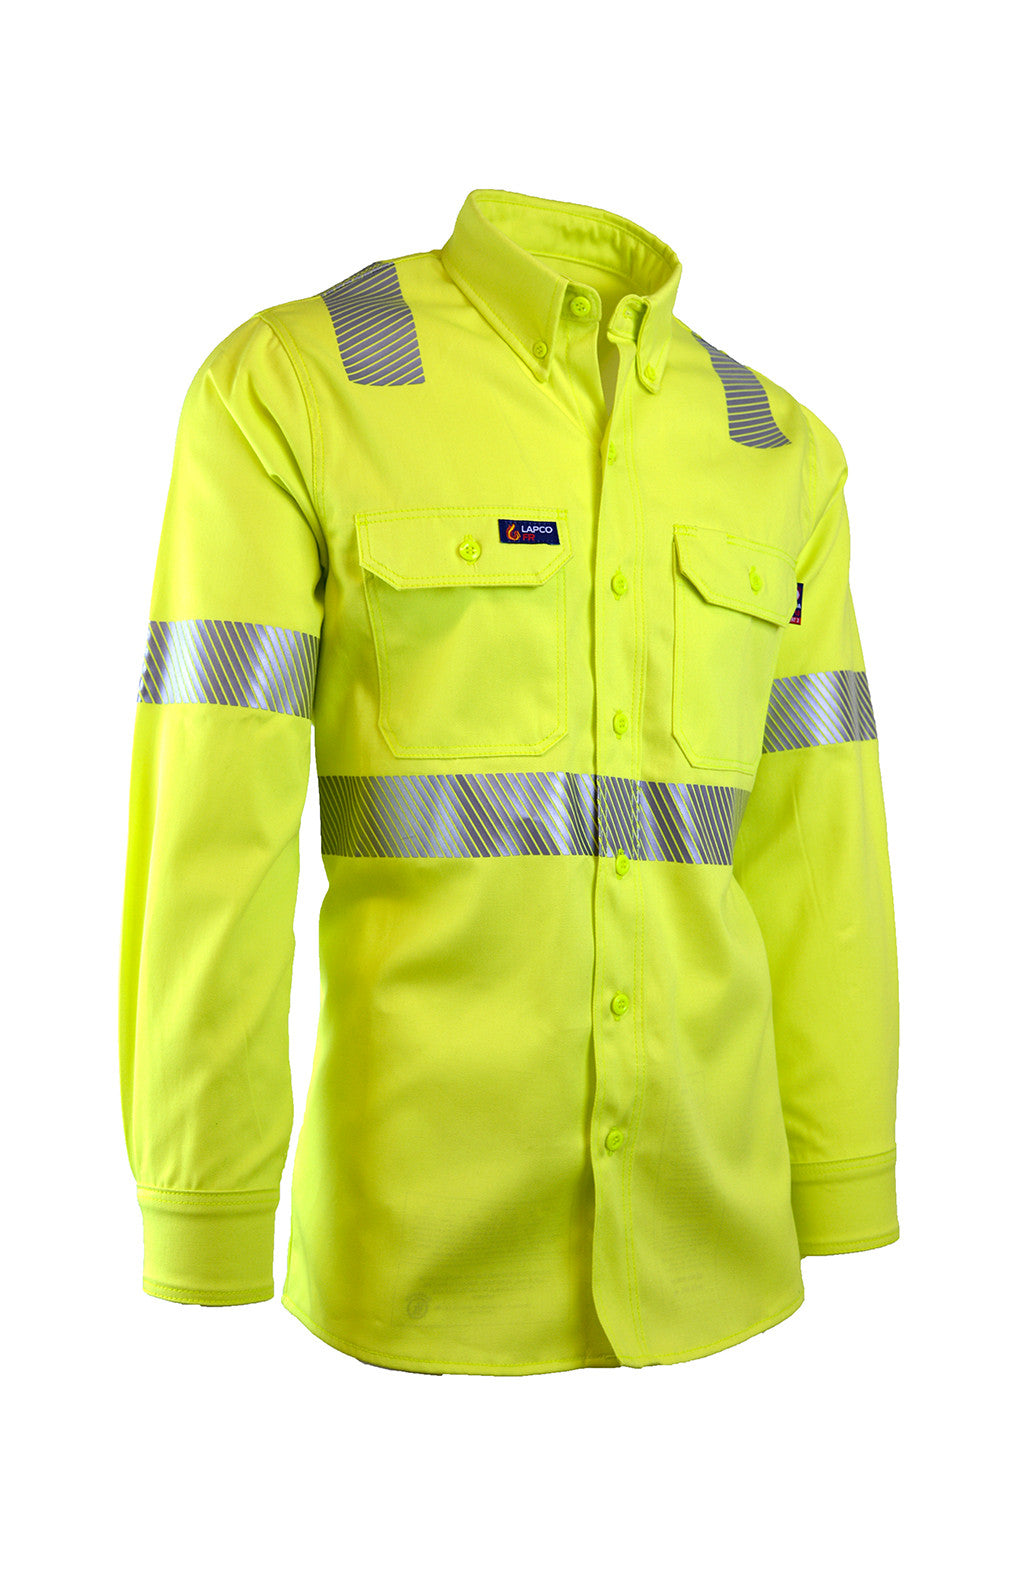 7oz. FR Uniform Shirts | Hi-Viz Class 2 | 100% Cotton - www.lapco.com